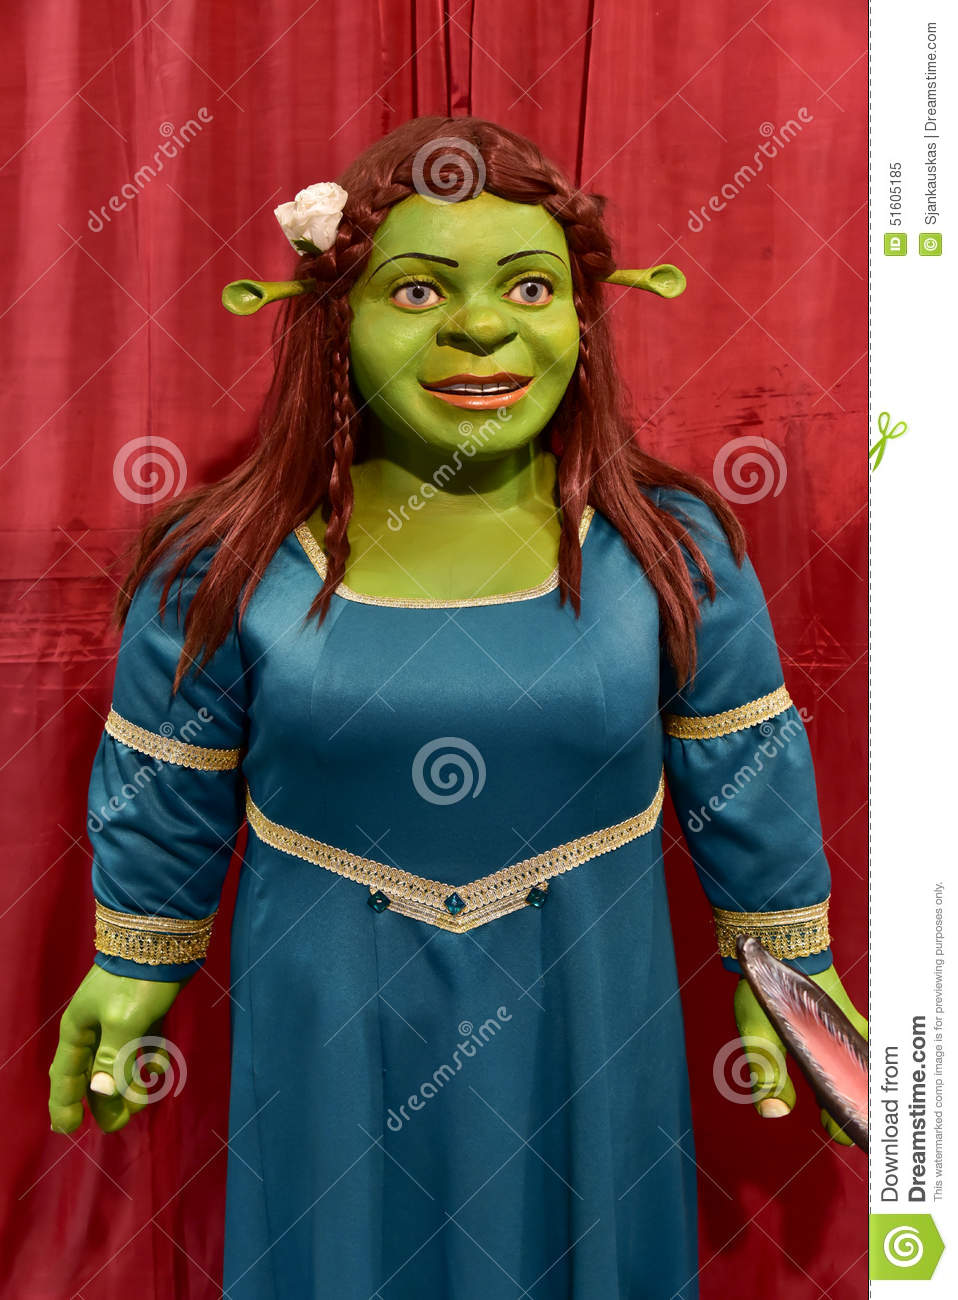 Shrek 2 Cartoon Characters : Fiona cartoon character editorial image of